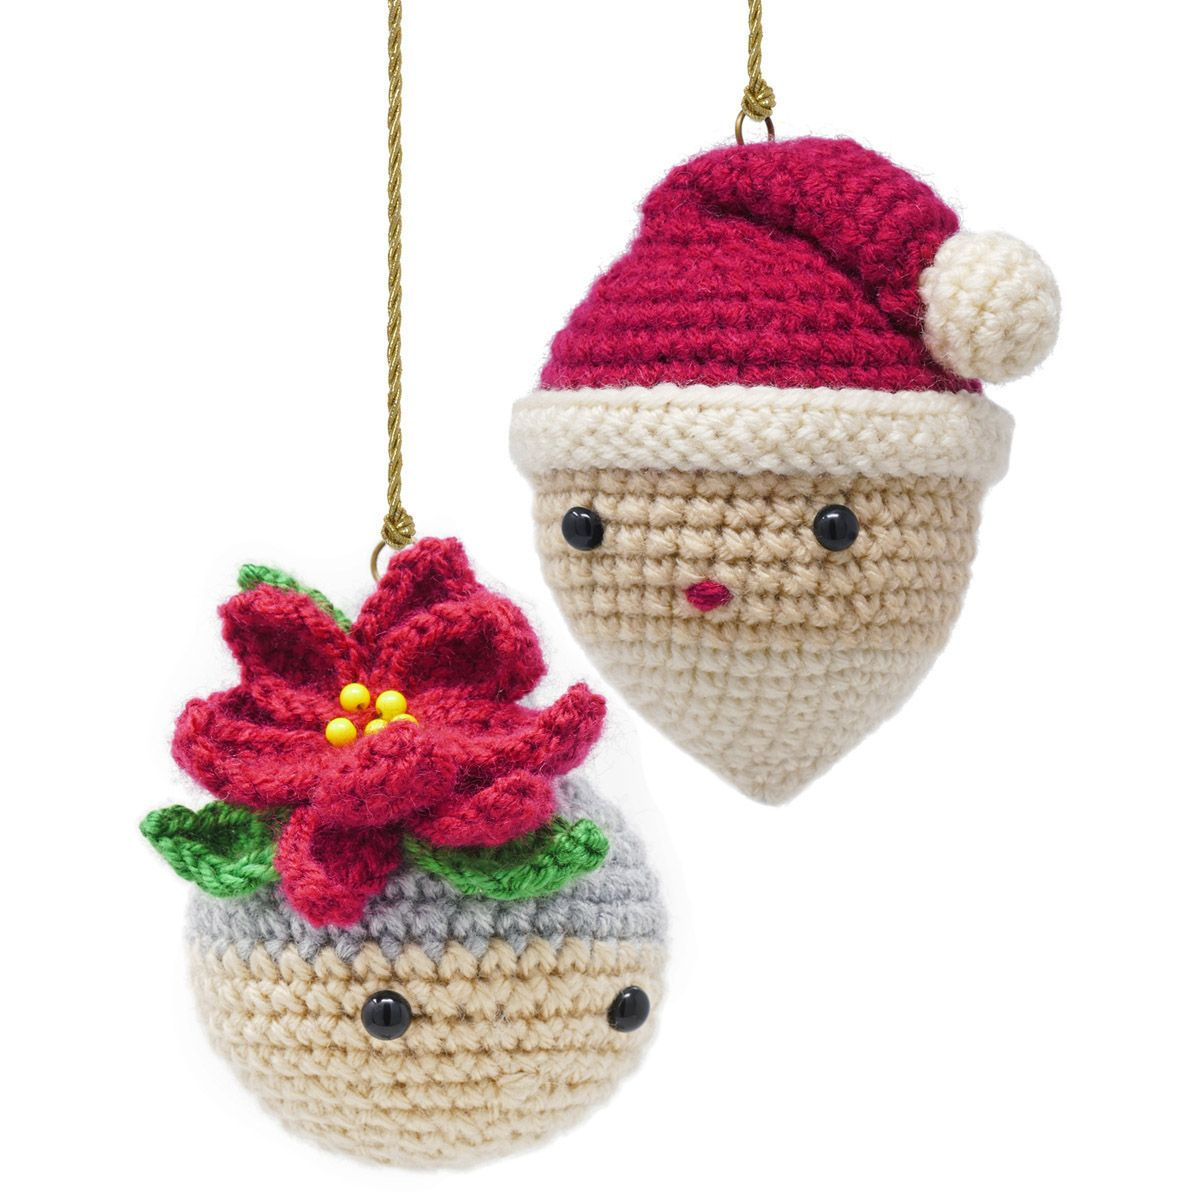 Santa And Mrs Claus Crocheted Ornaments Christmas Crochet Christmas Crochet Patterns Crochet Patterns